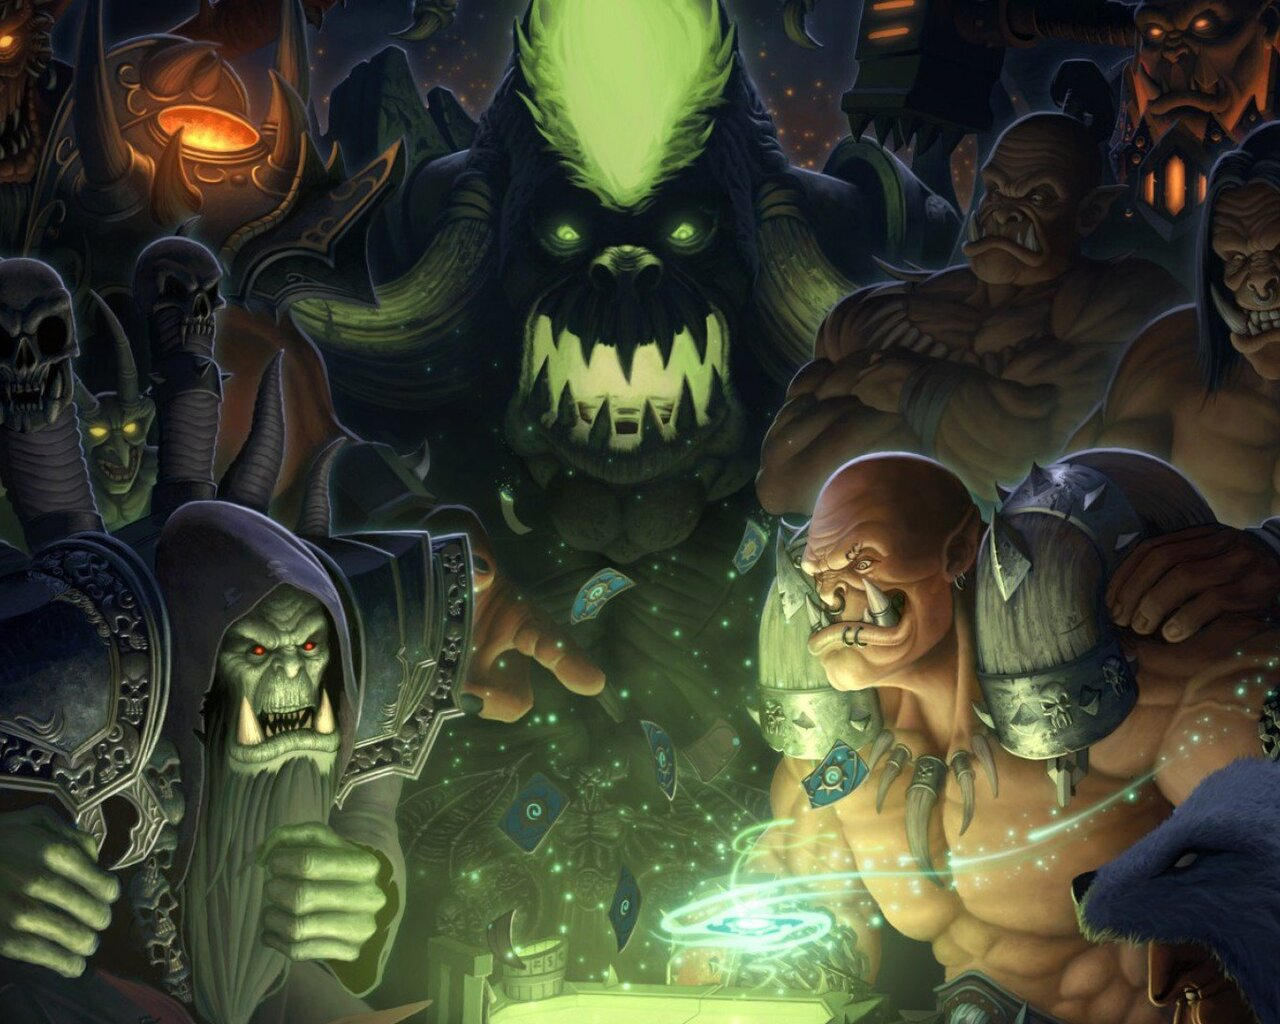 1280x1024 World Of Warcraft Characters 1280x1024 Resolution